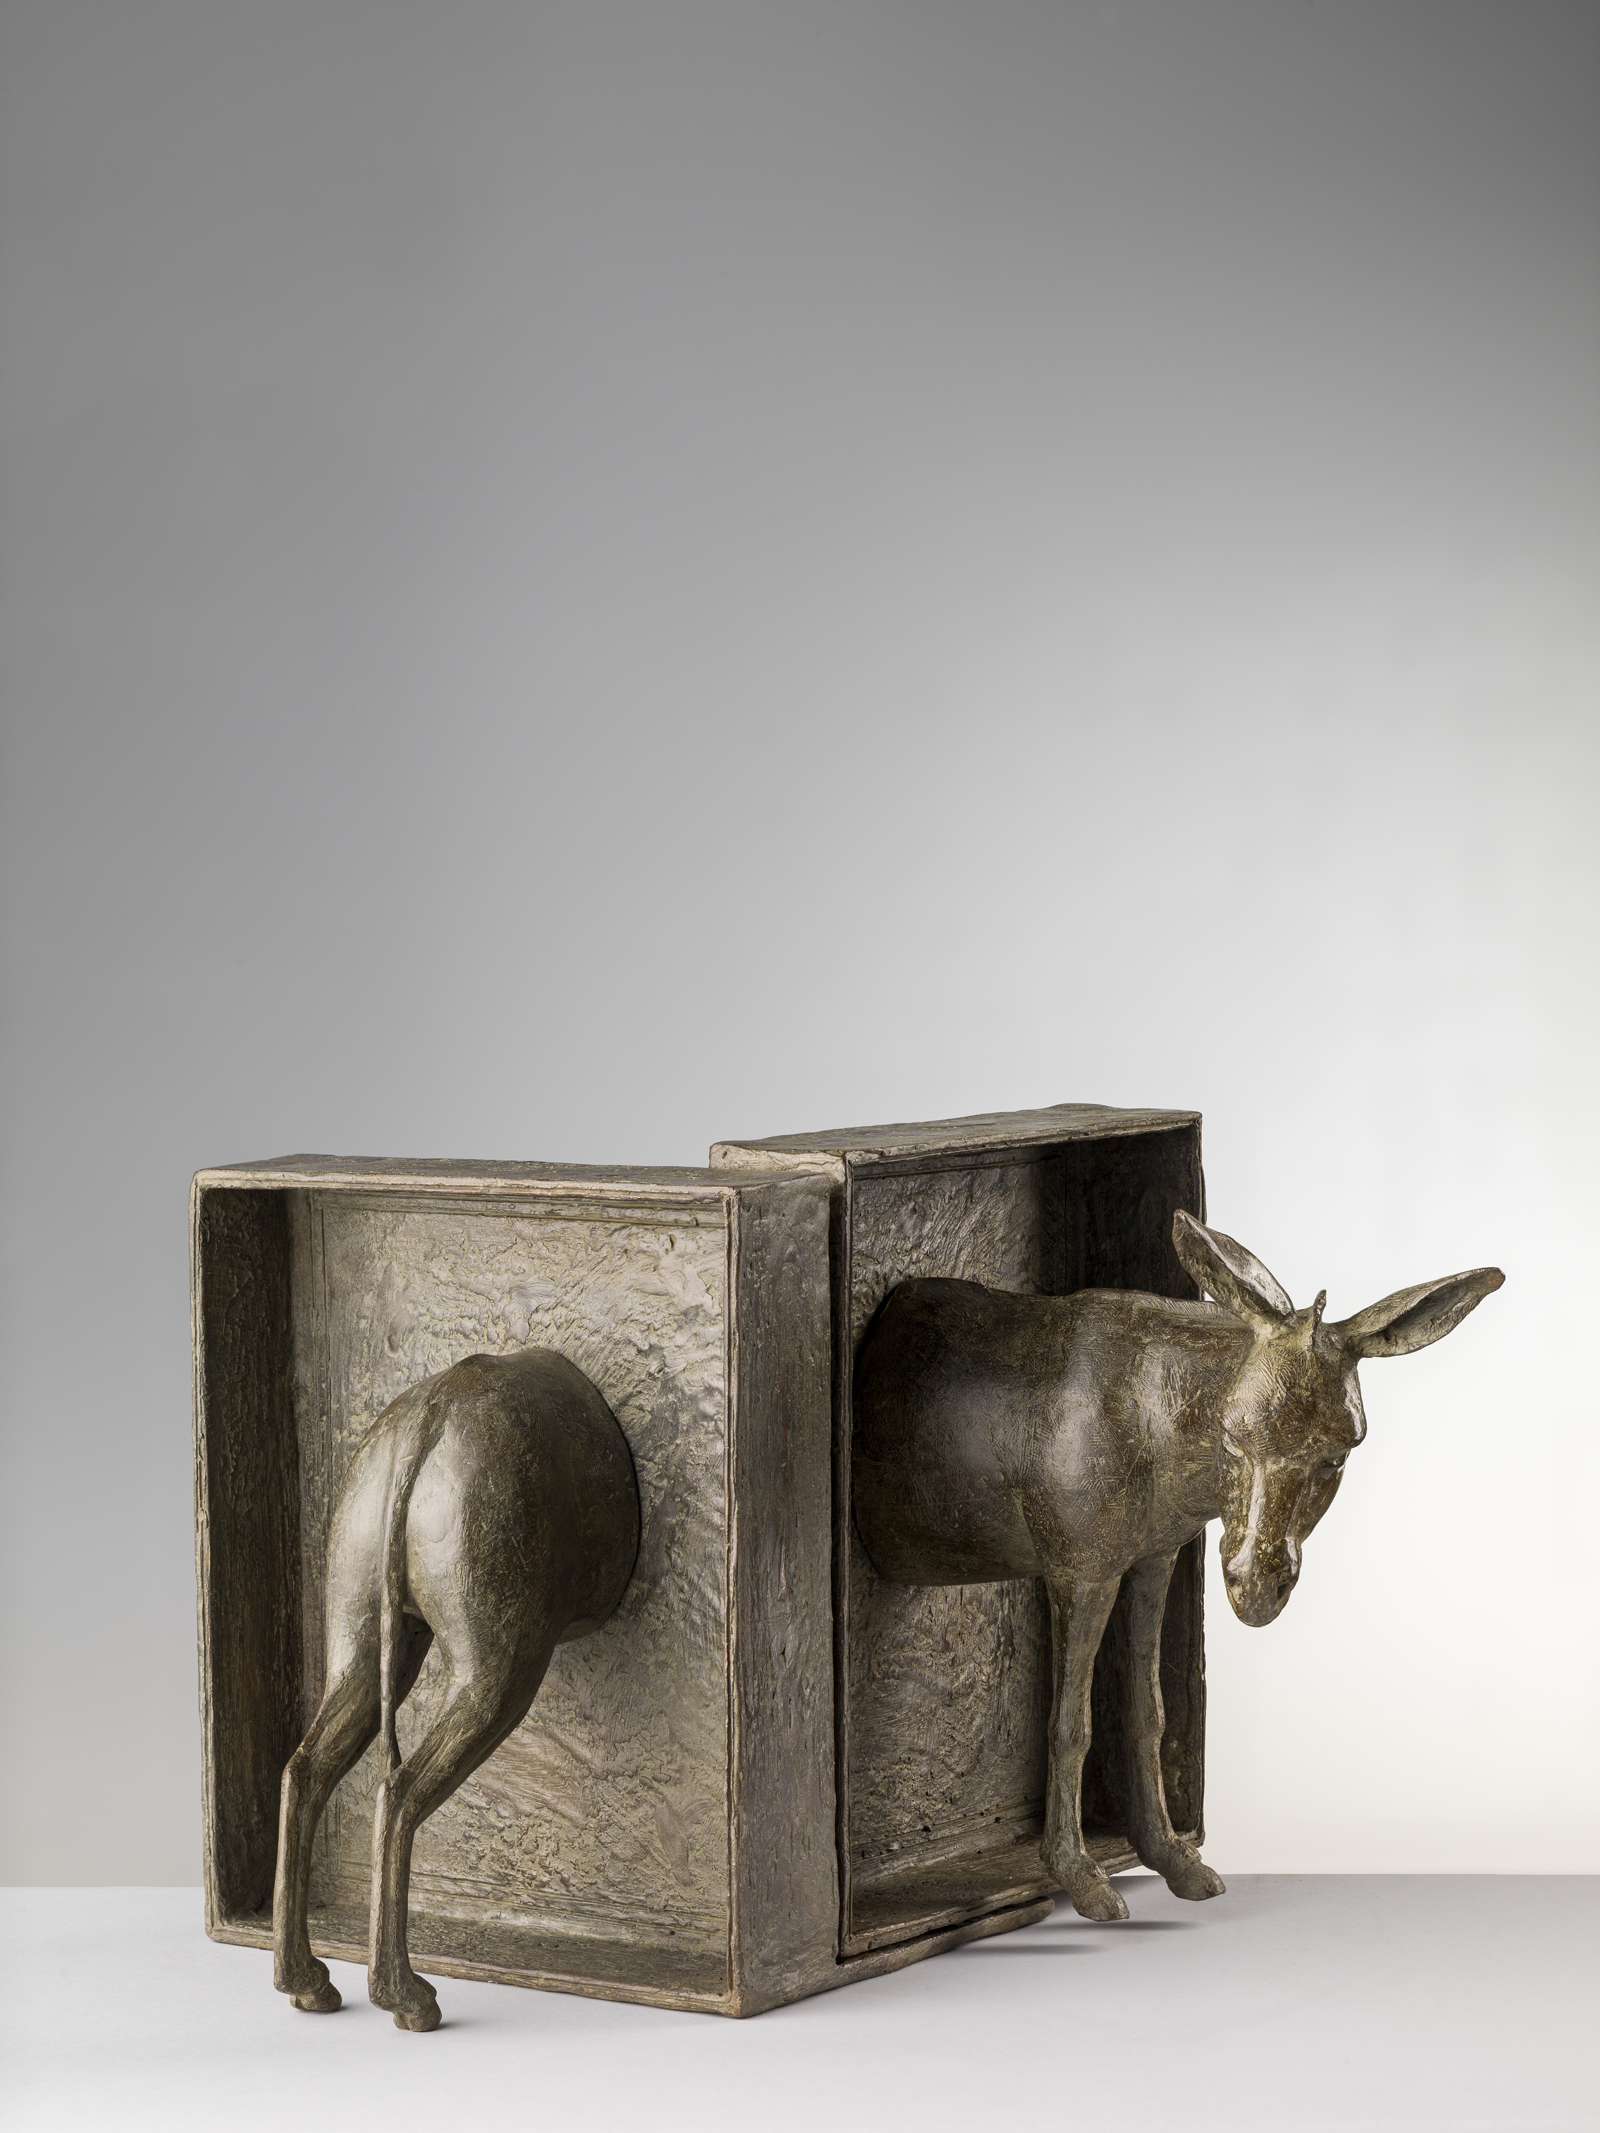 5.1 Sleeping Donkey (After Jacques Prevert), 'L'Asino Dormiente (Dopo Jacques Prevert)' by Nicola Lazzari 20cm H x 20cm W x 17cm D.jpg